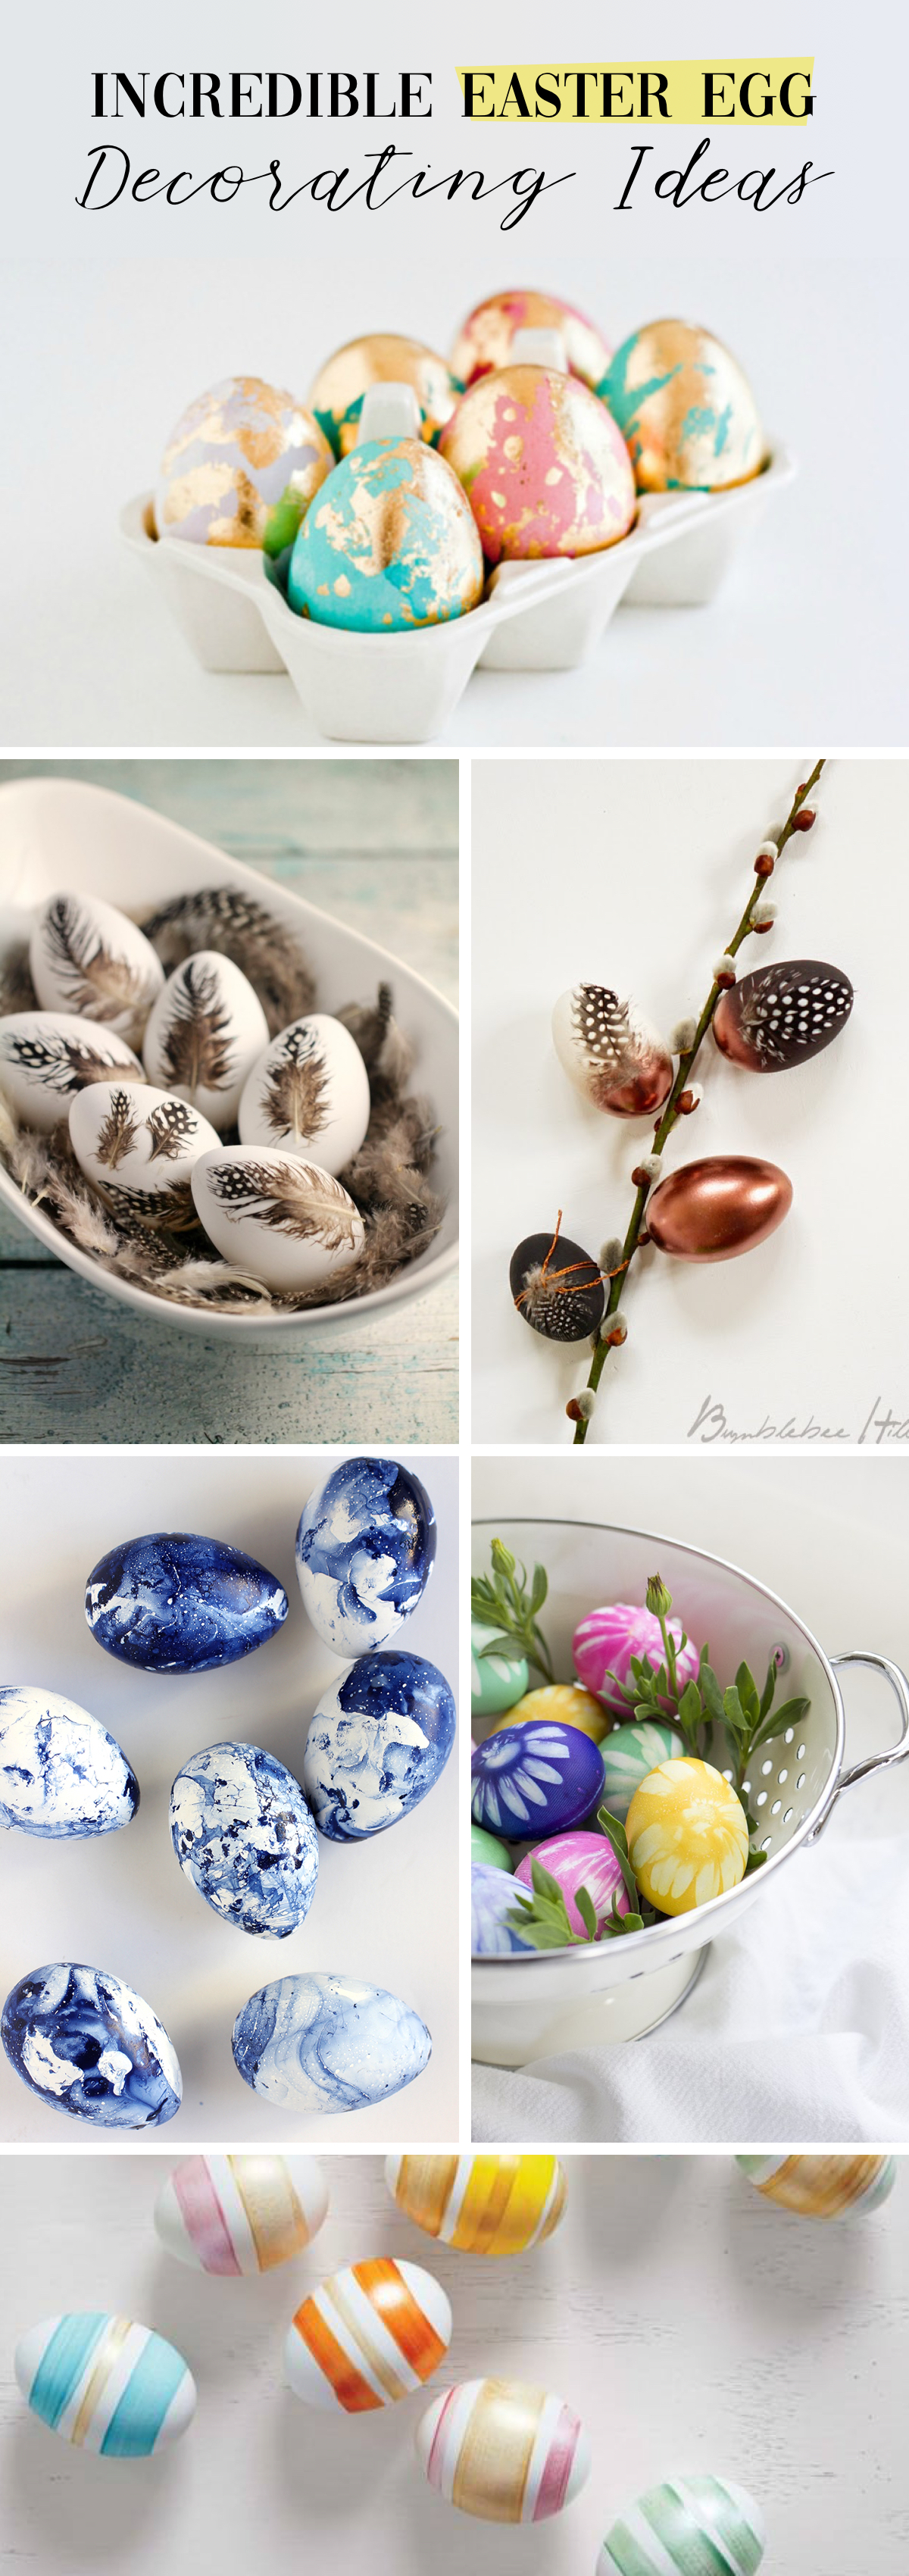 Incredible Easter Egg Decorating Ideas